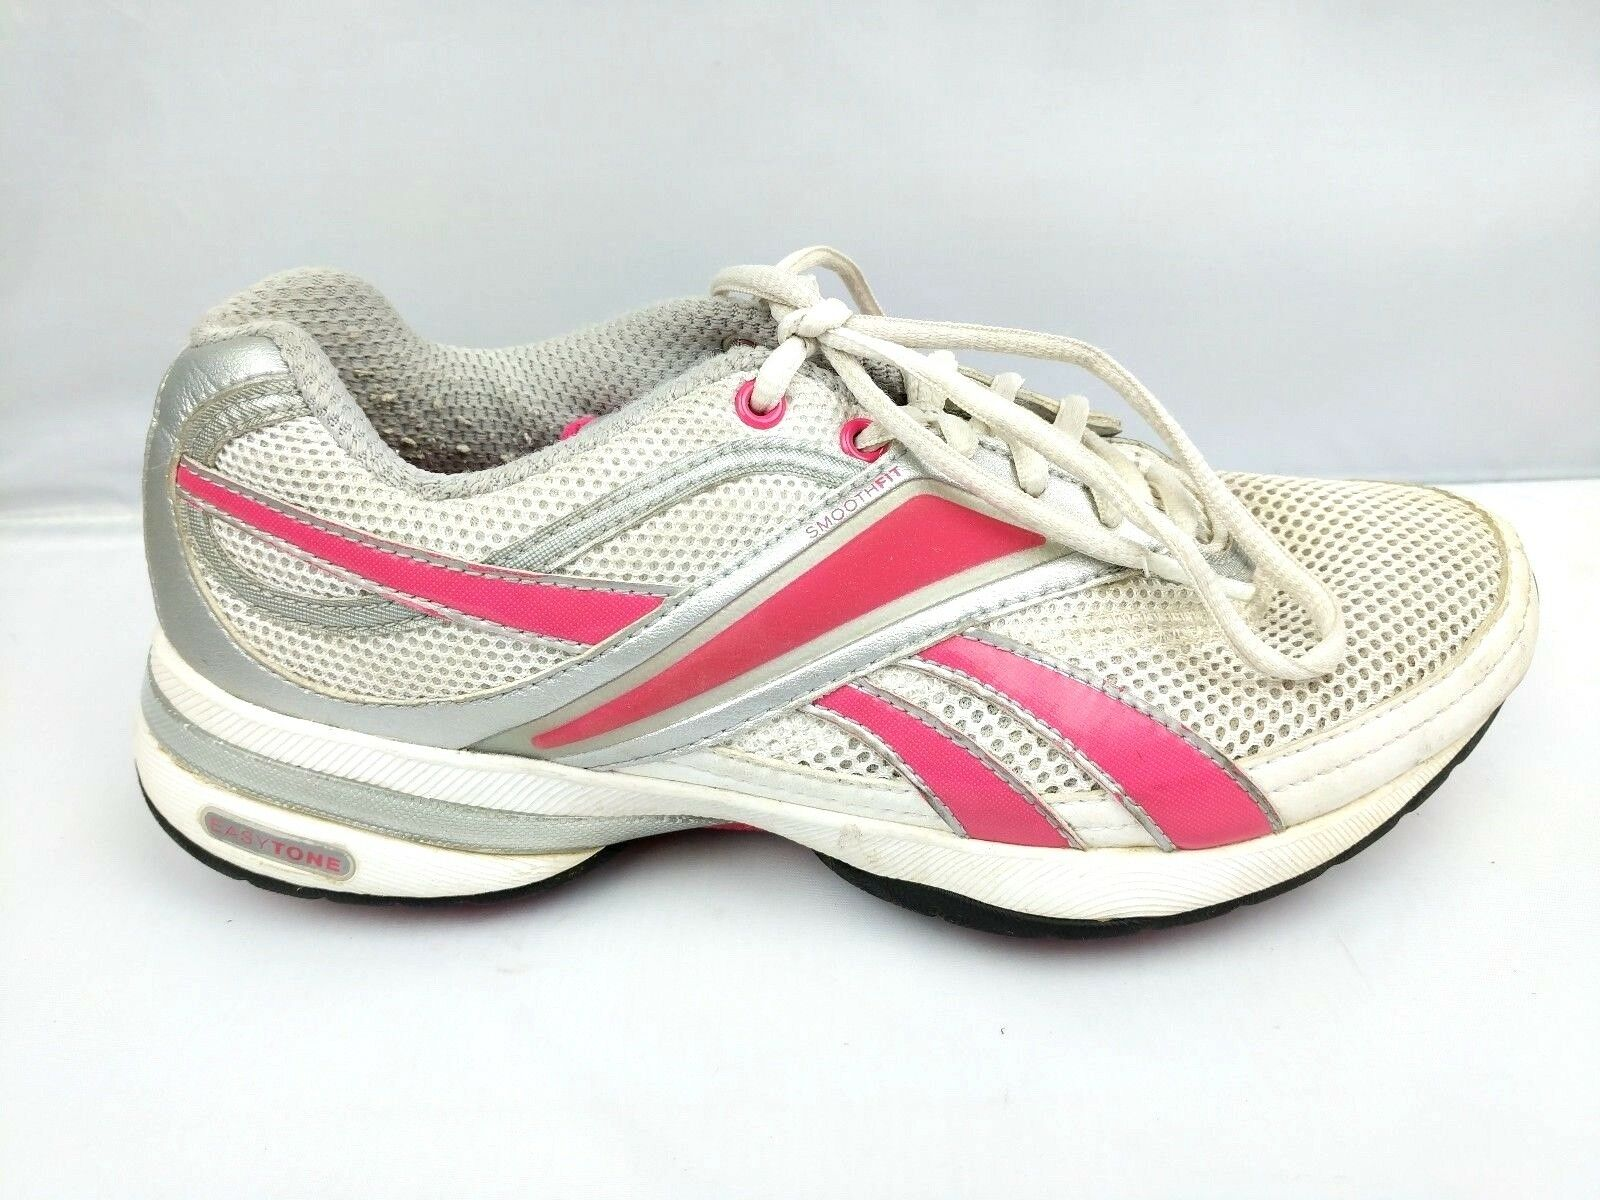 Reebok Easy Tone Womens Size 7 White Pink Lace Up Toning shoes Walking Running